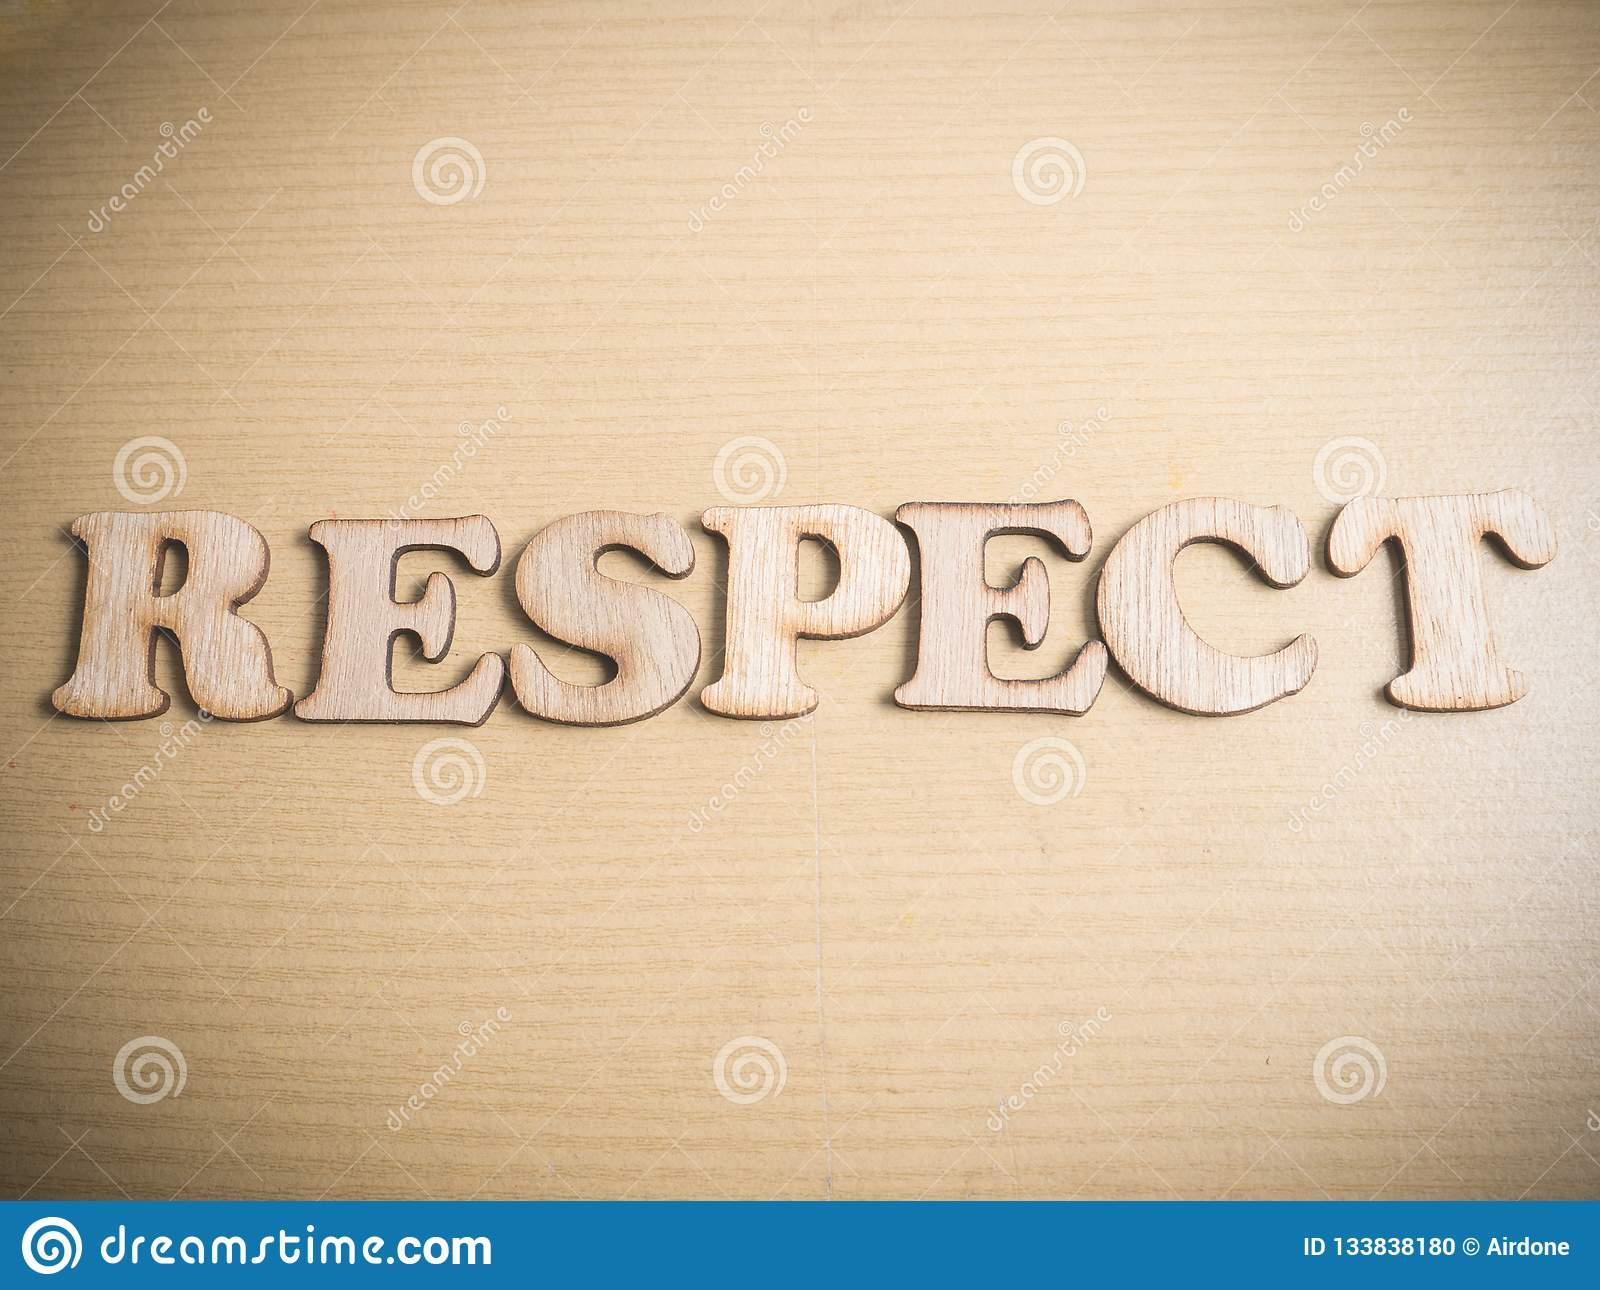 Respect Motivational Words Quotes Concept Stock Photo Image Of